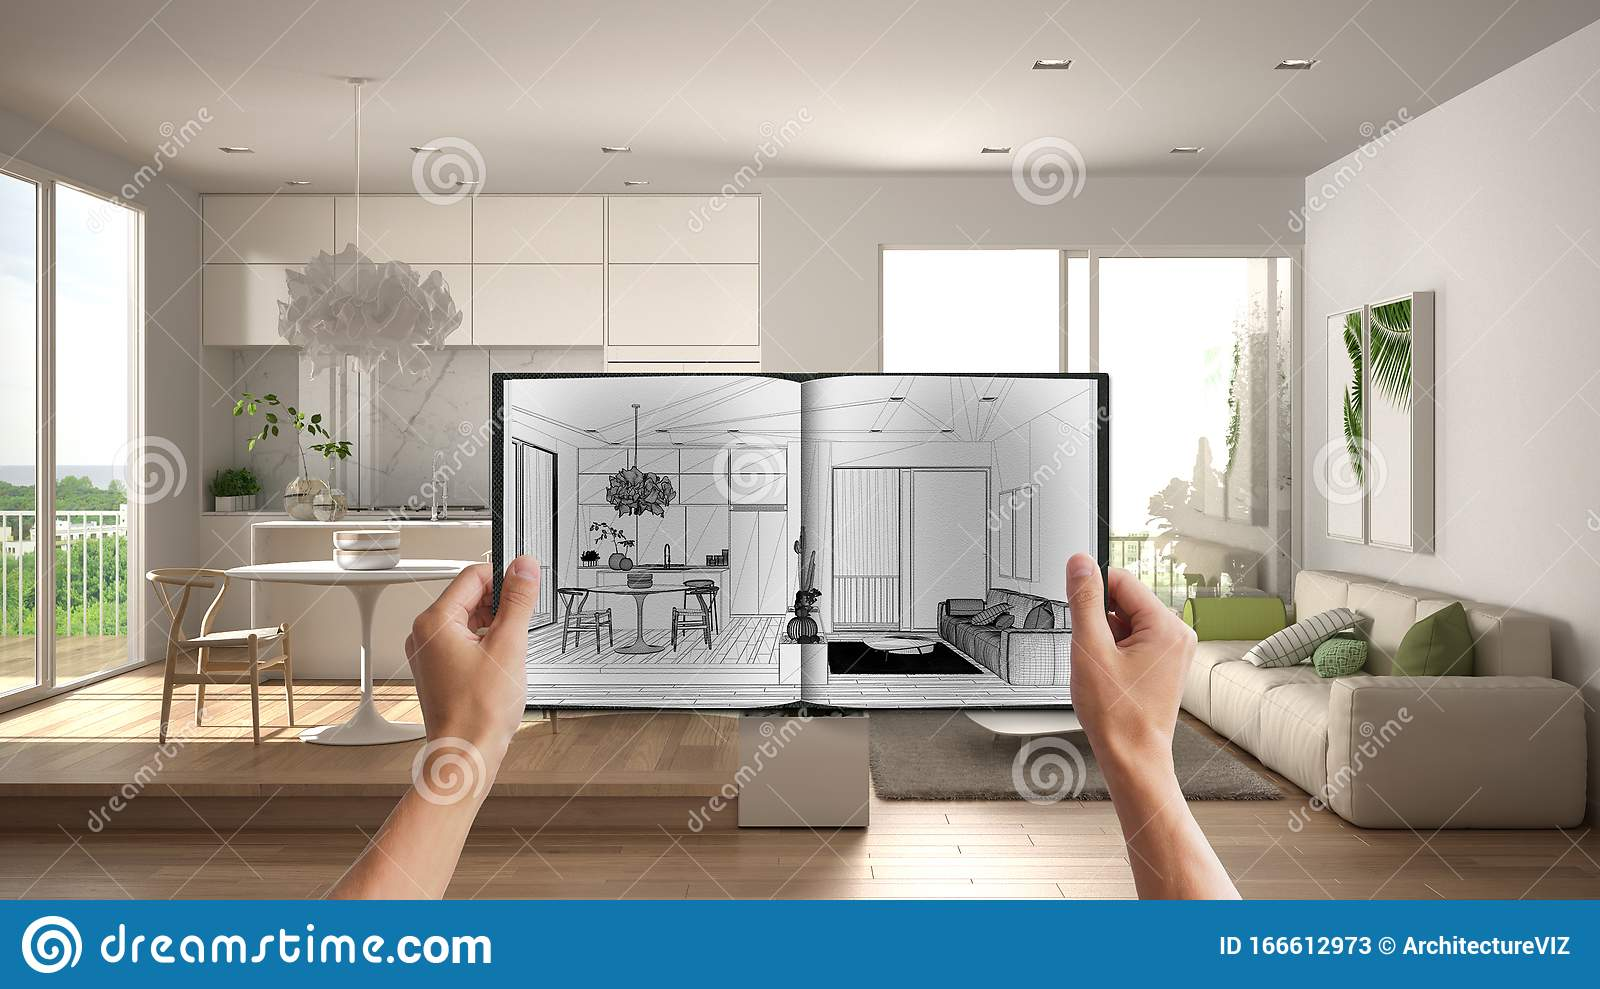 Hands Holding Notepad With Creative Kitchen Design Blueprint Sketch Or Drawing Real Interior Design Project Background Before Stock Image Image Of Design House 166612973